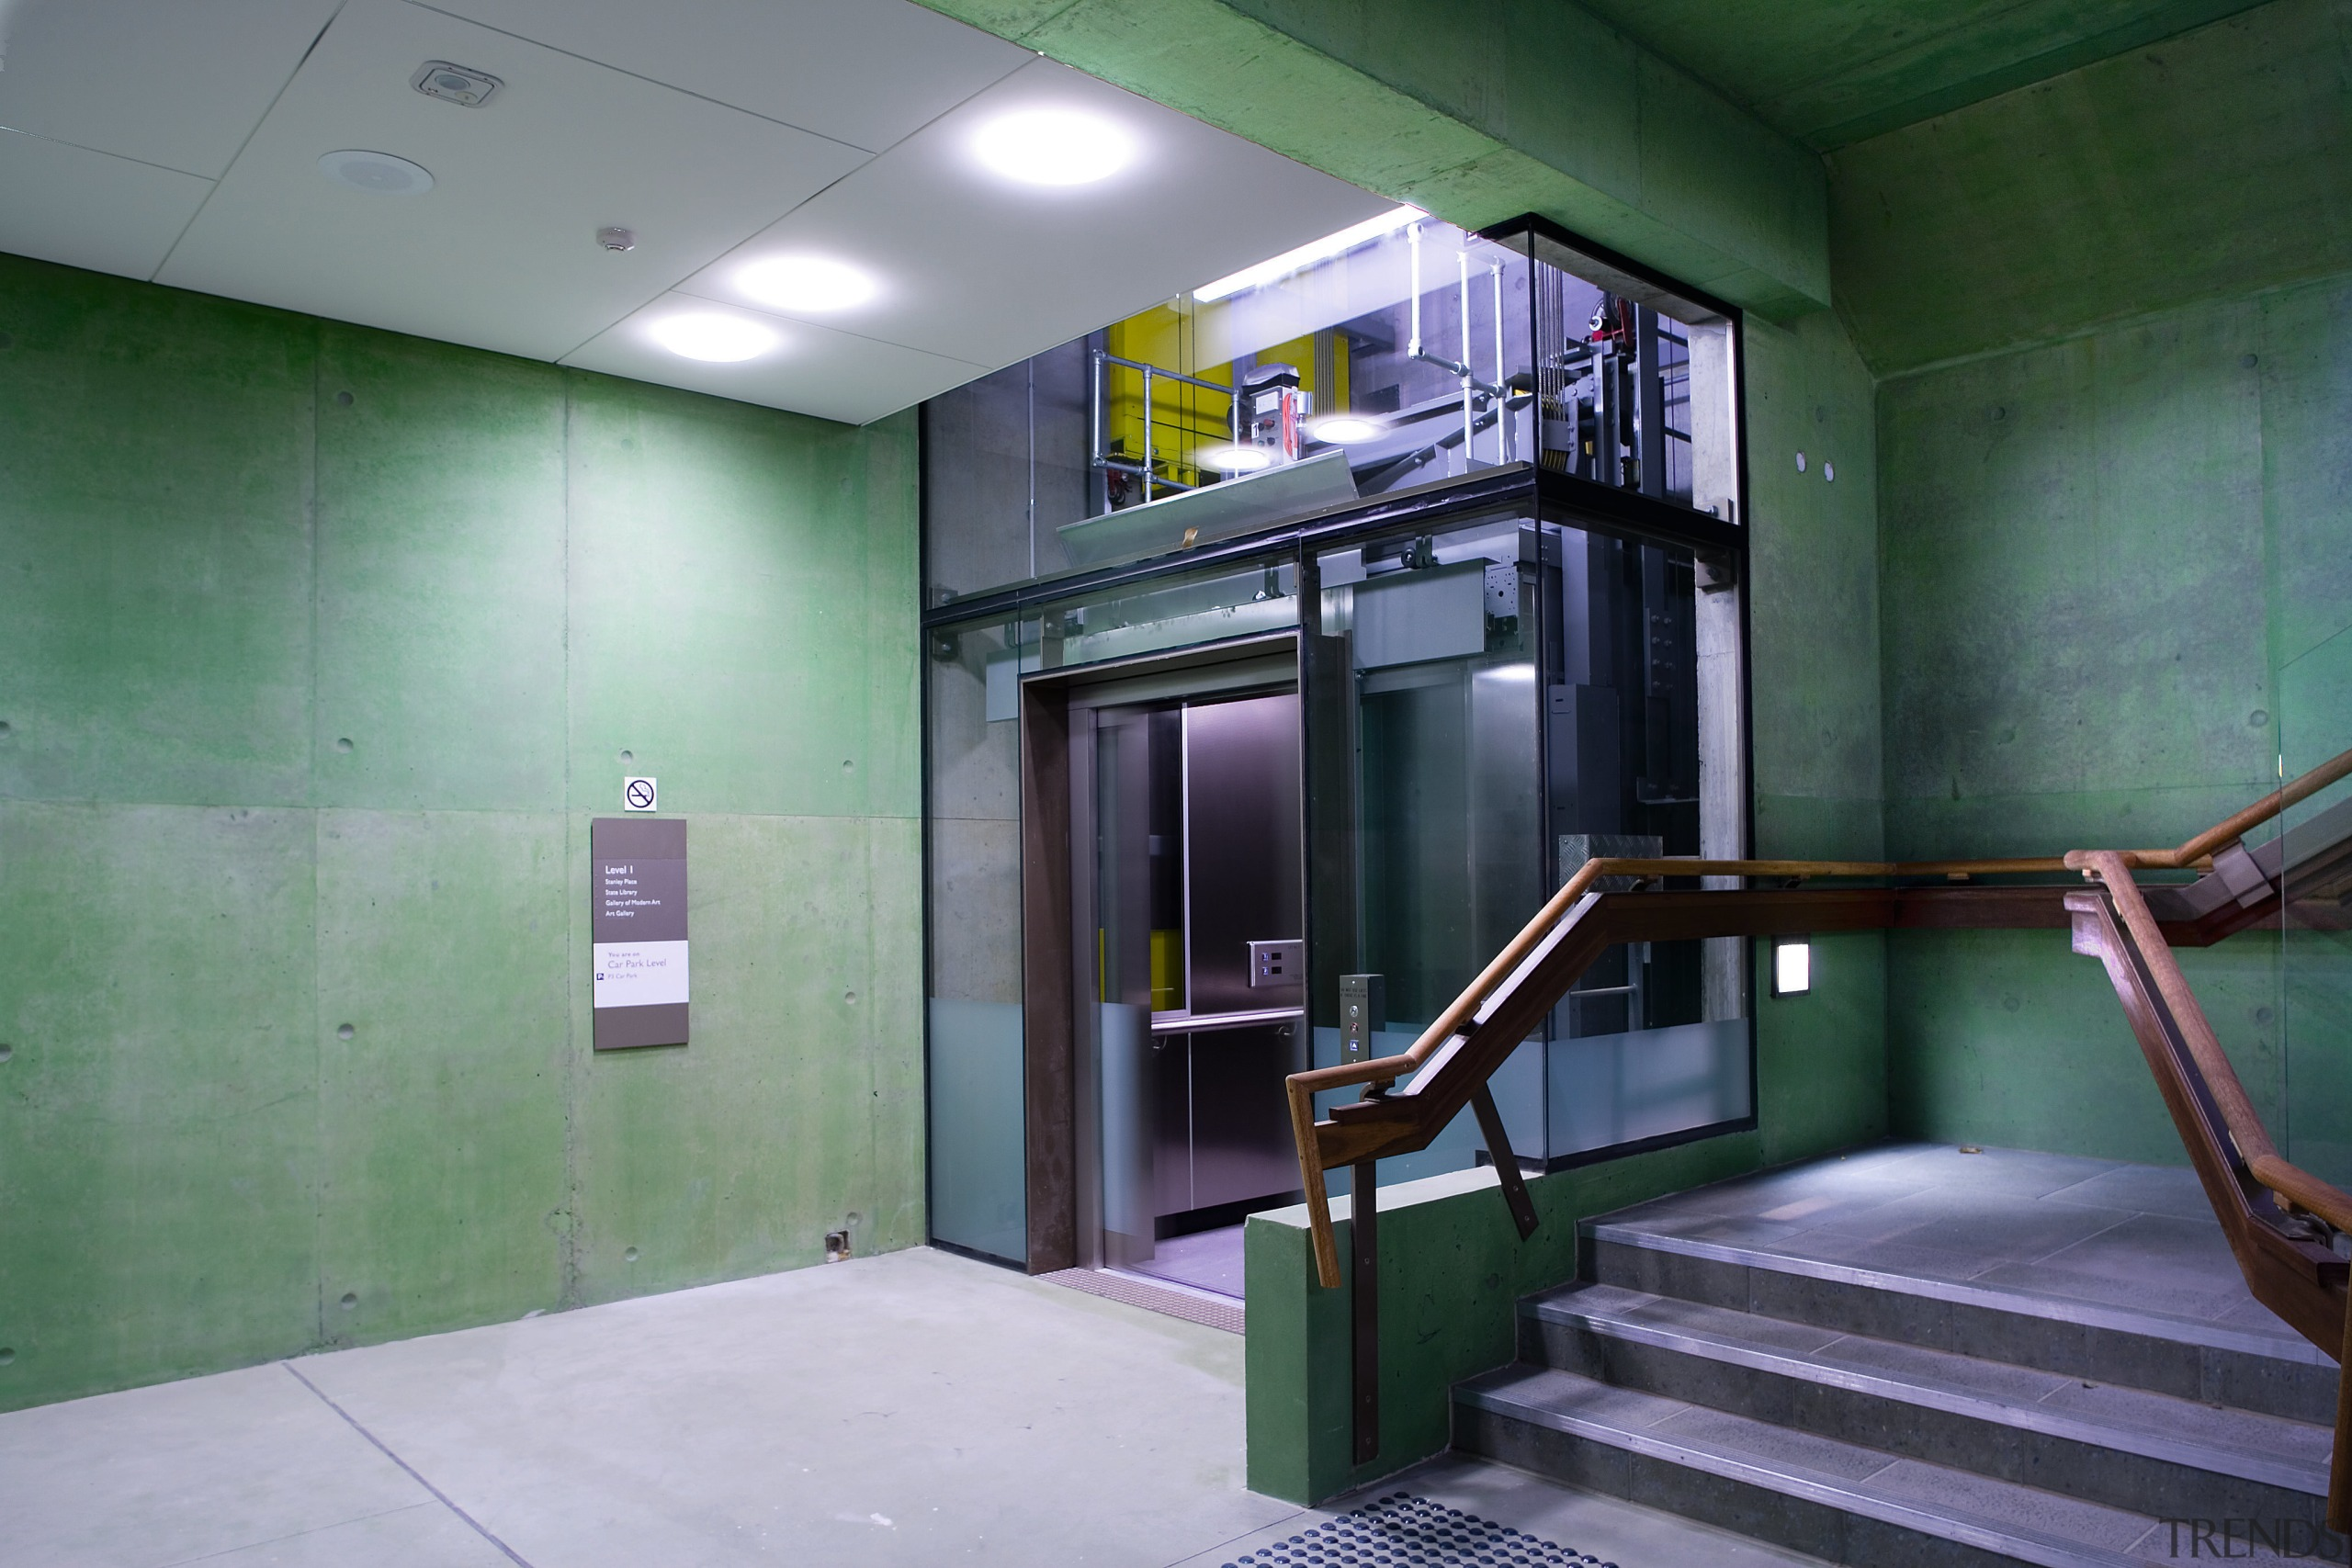 A view of a lift from Liftronic. - architecture, gray, green